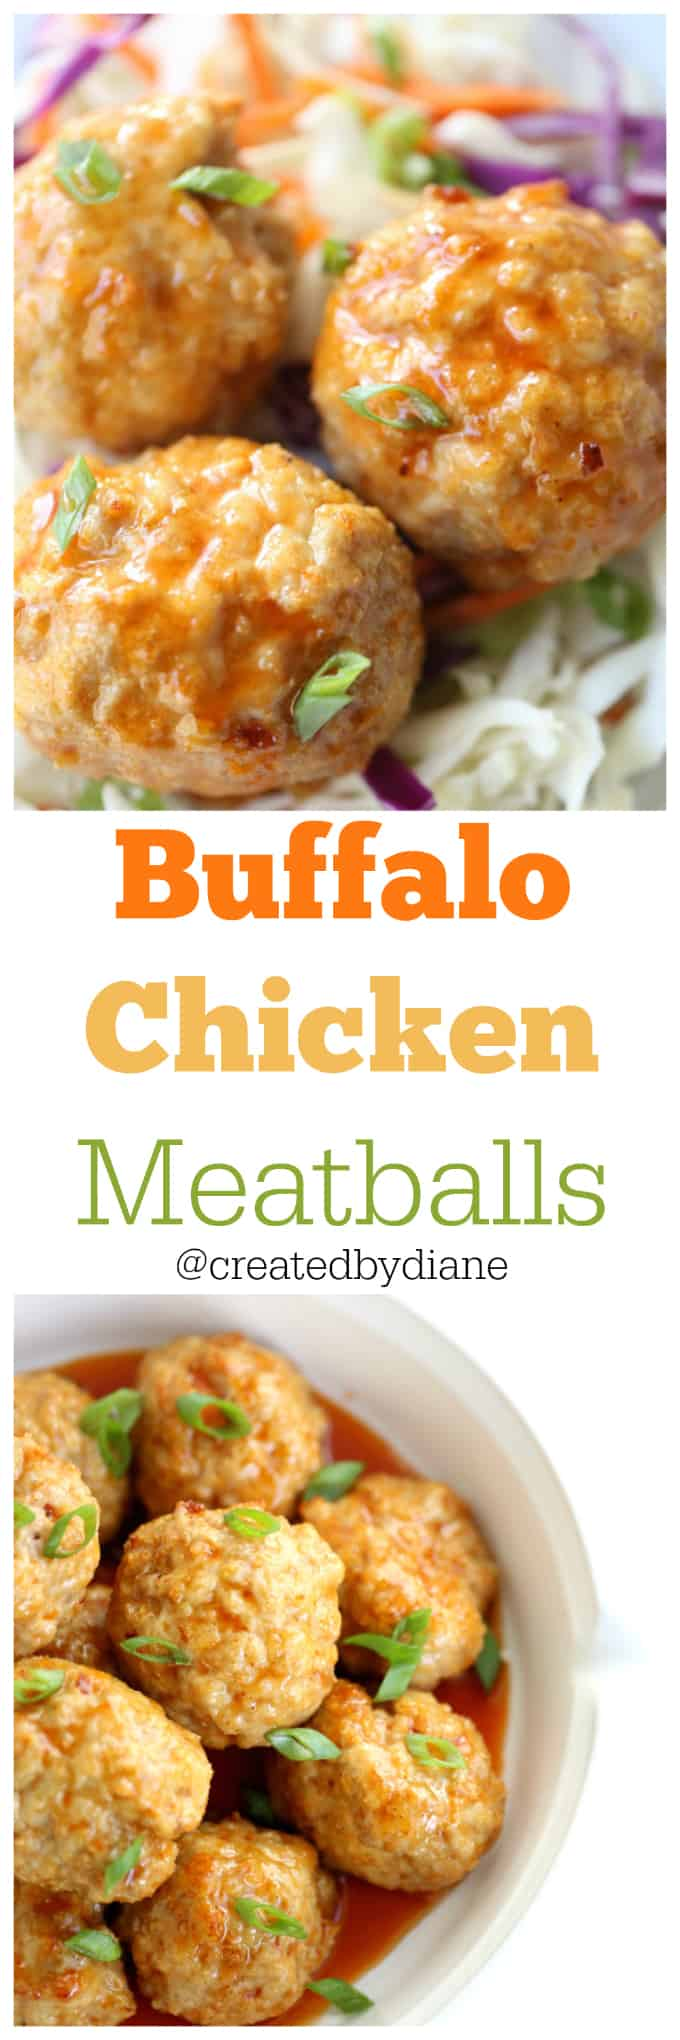 buffalo chicken meatball recipe from @createdbydiane